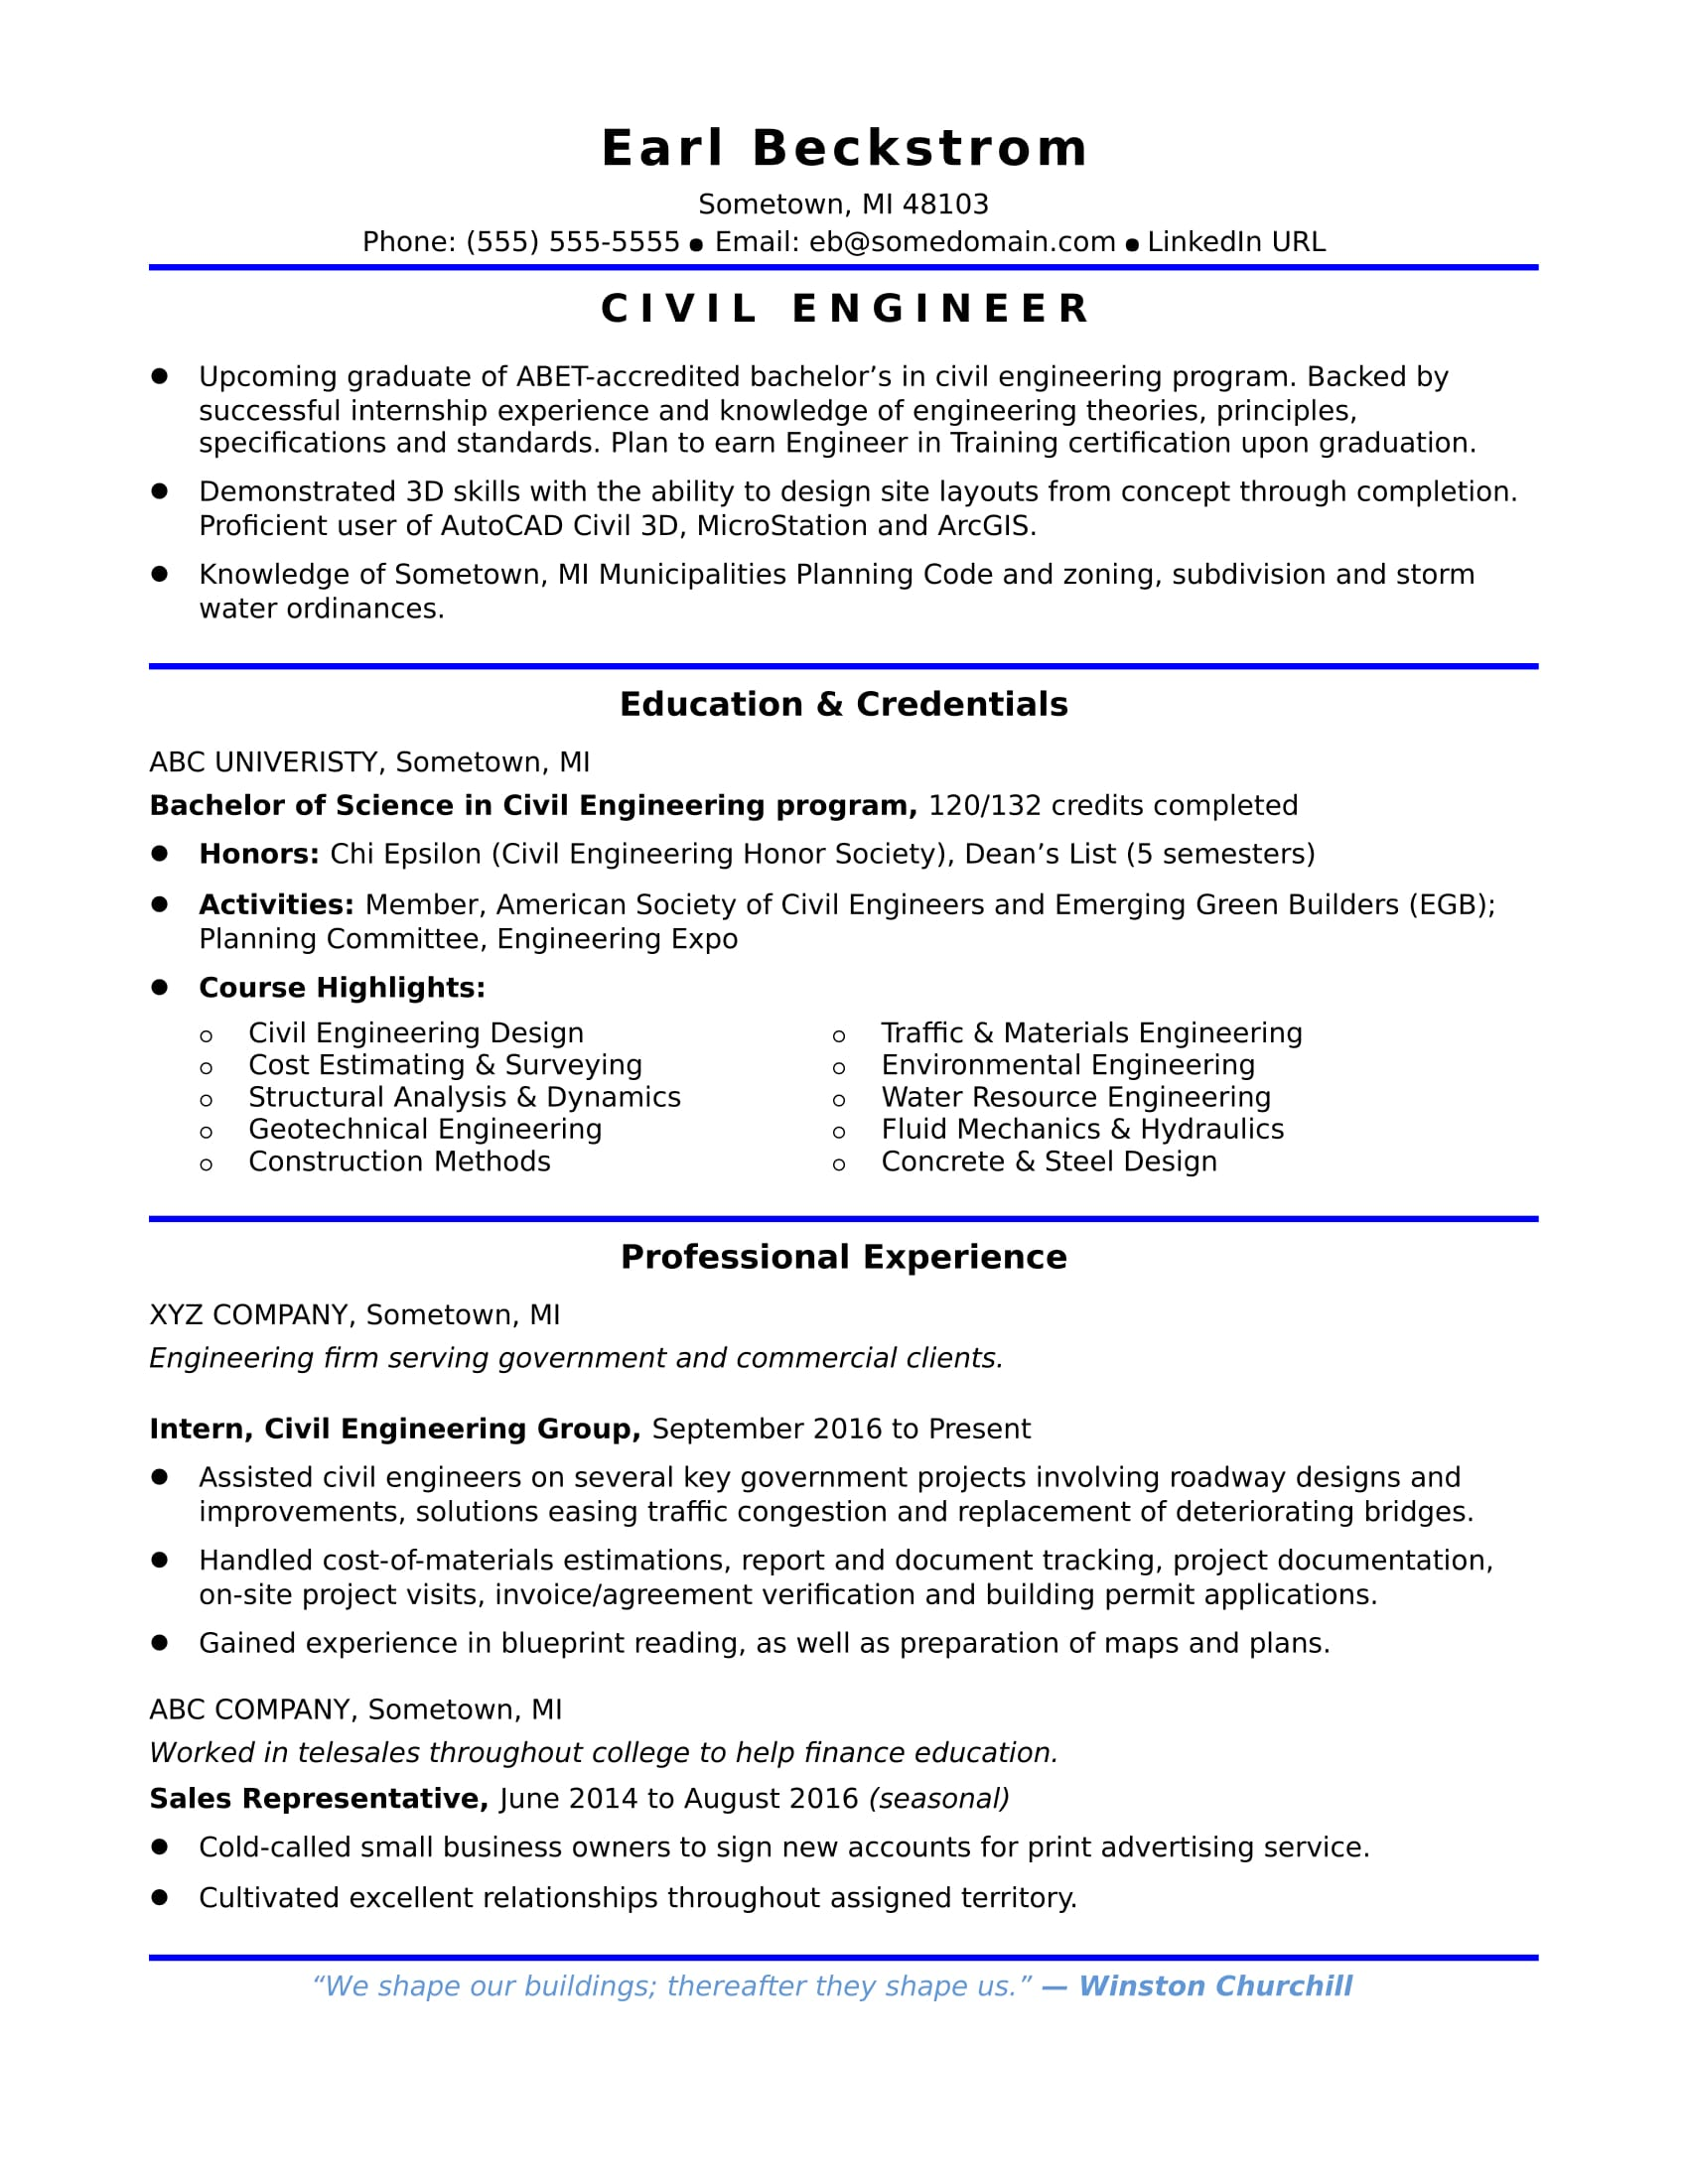 Resume Unique Sample Resume For An EntryLevel Civil Engineer Monster